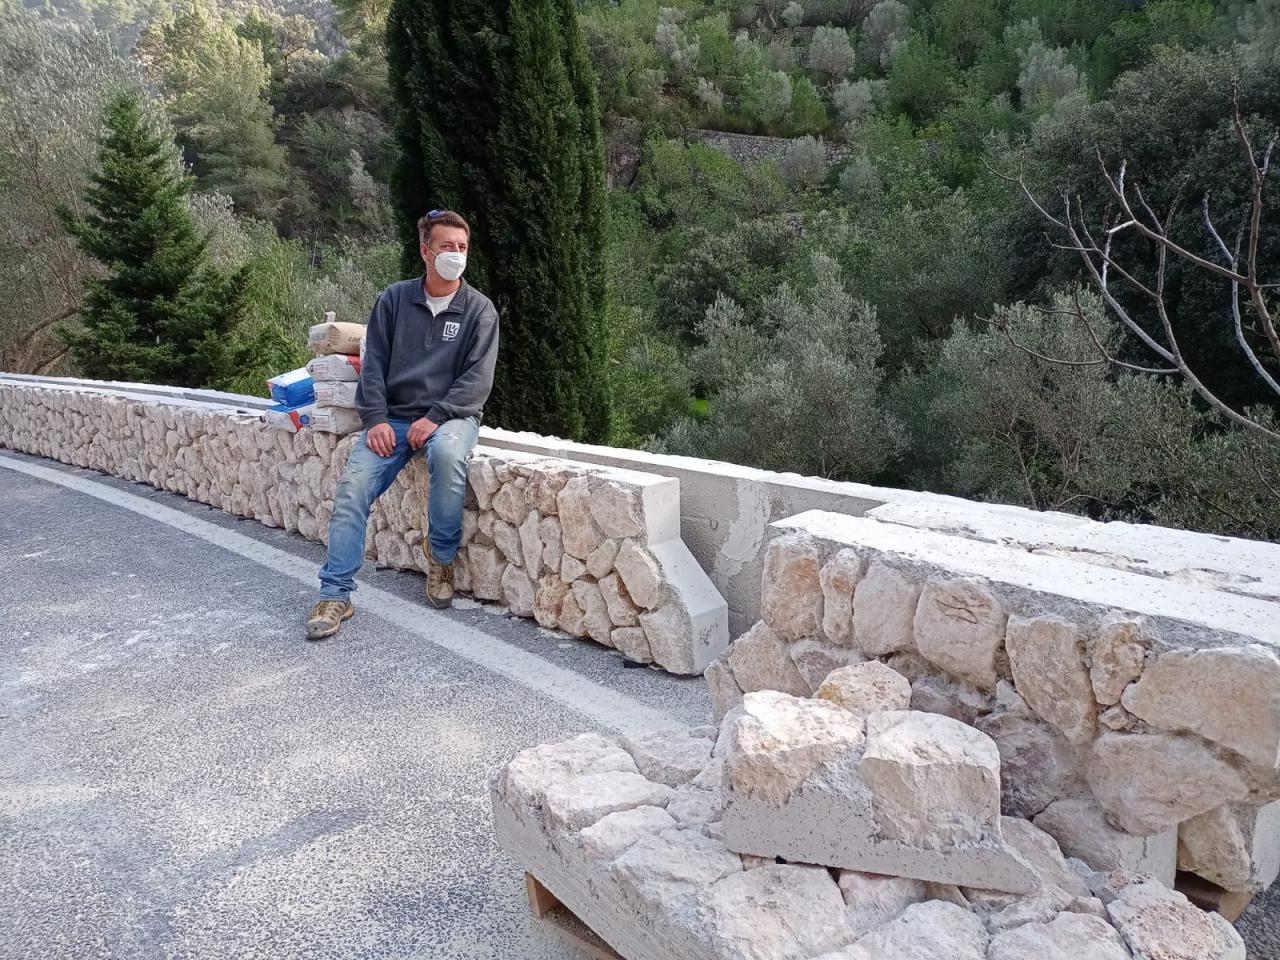 Lluc Mir, spokesperson for The Gremi de Margers on the prefabricated wall